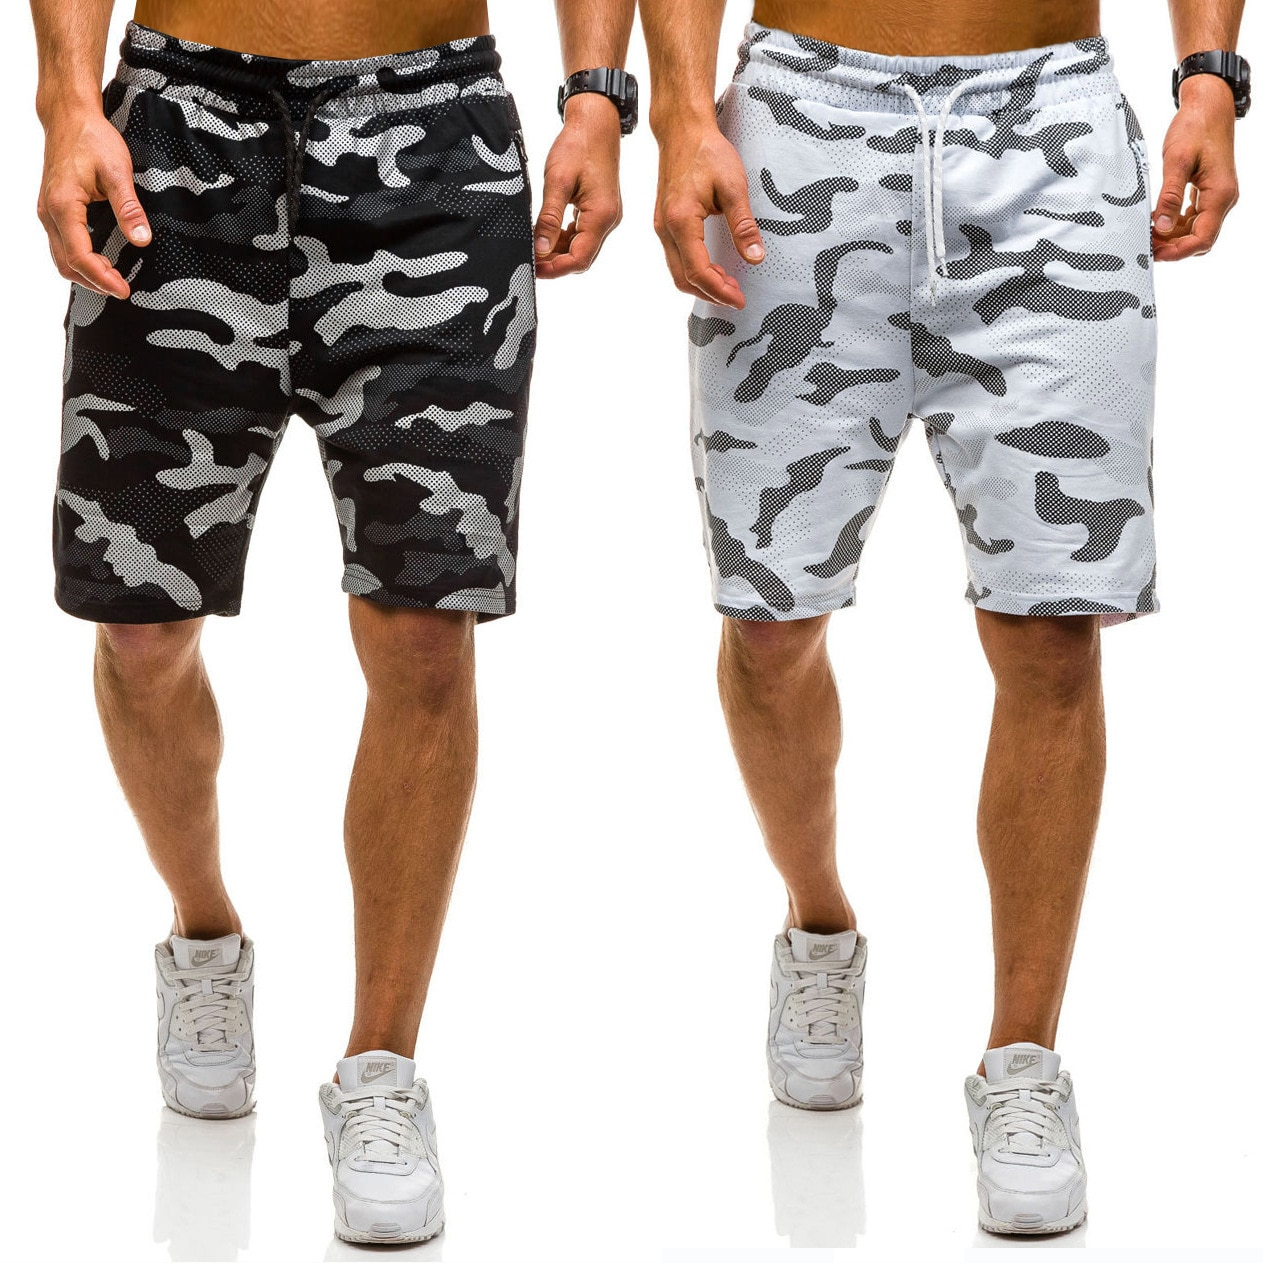 Men's brand new personalized fashion business casual camouflage pants sport pants casual pants shorts men sweatpants joggers